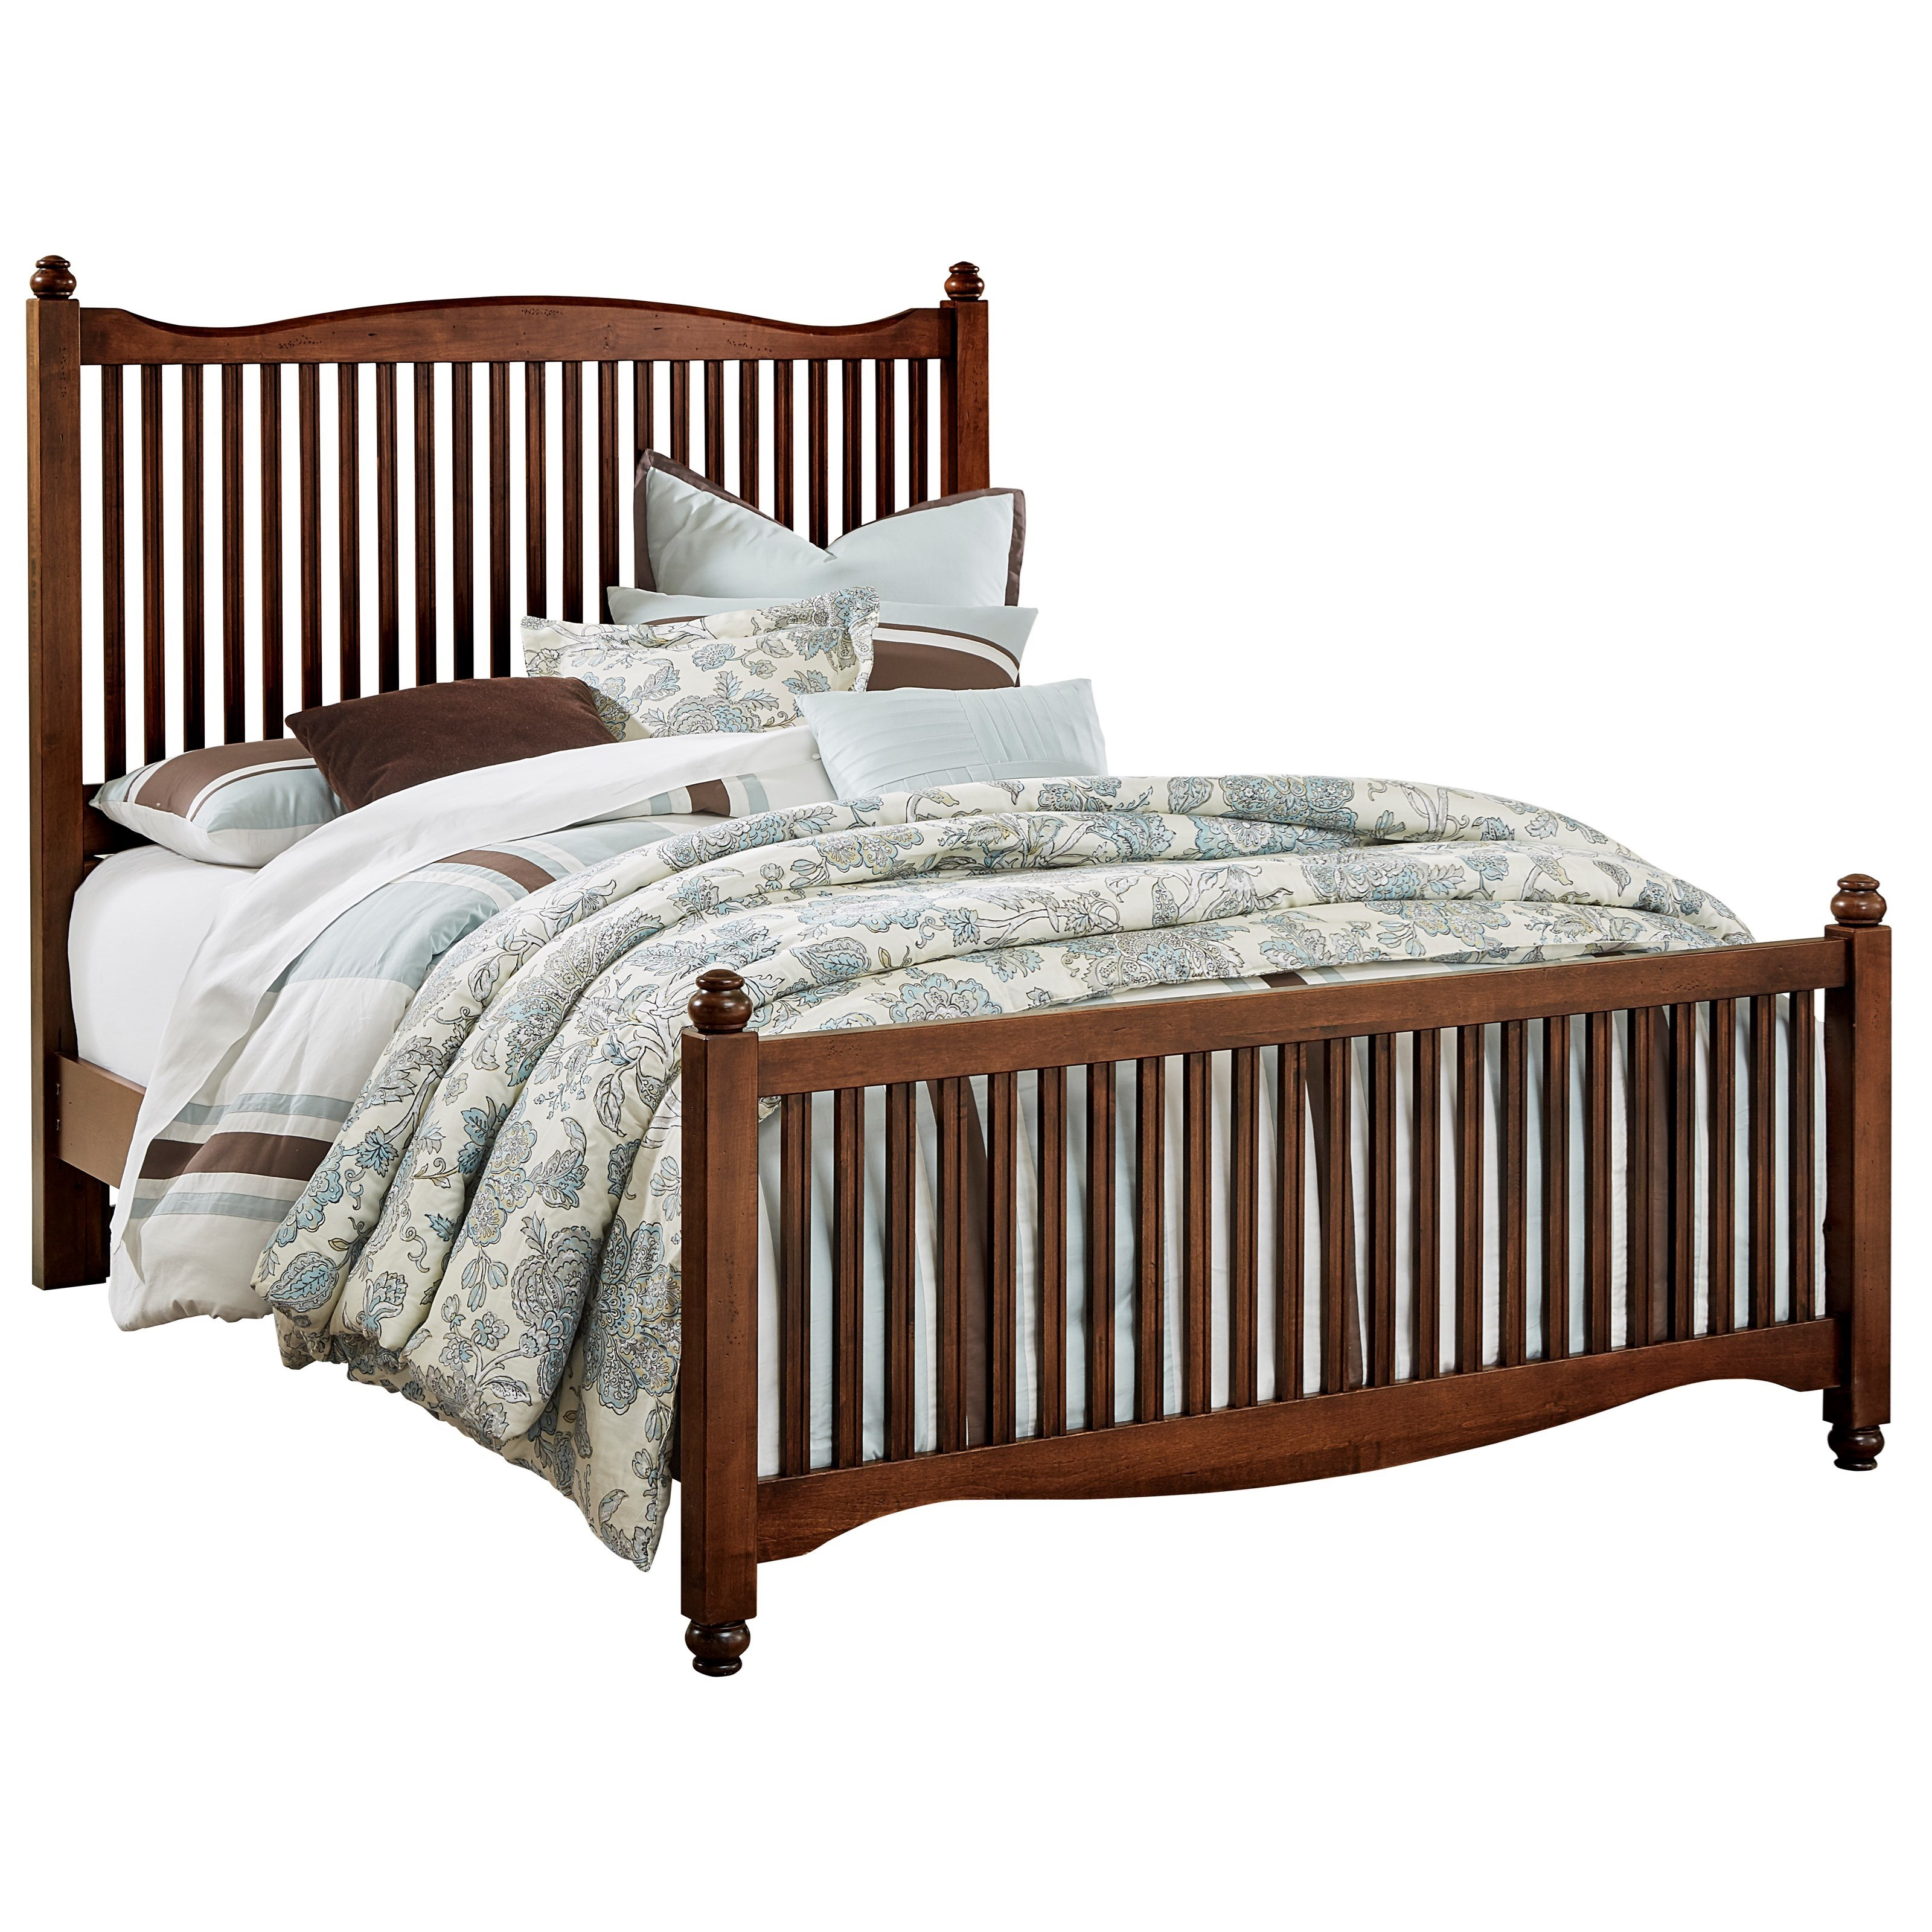 Vaughan Bassett American Maple Solid Wood Queen Slat Bed Dunk Bright Furniture Panel Beds